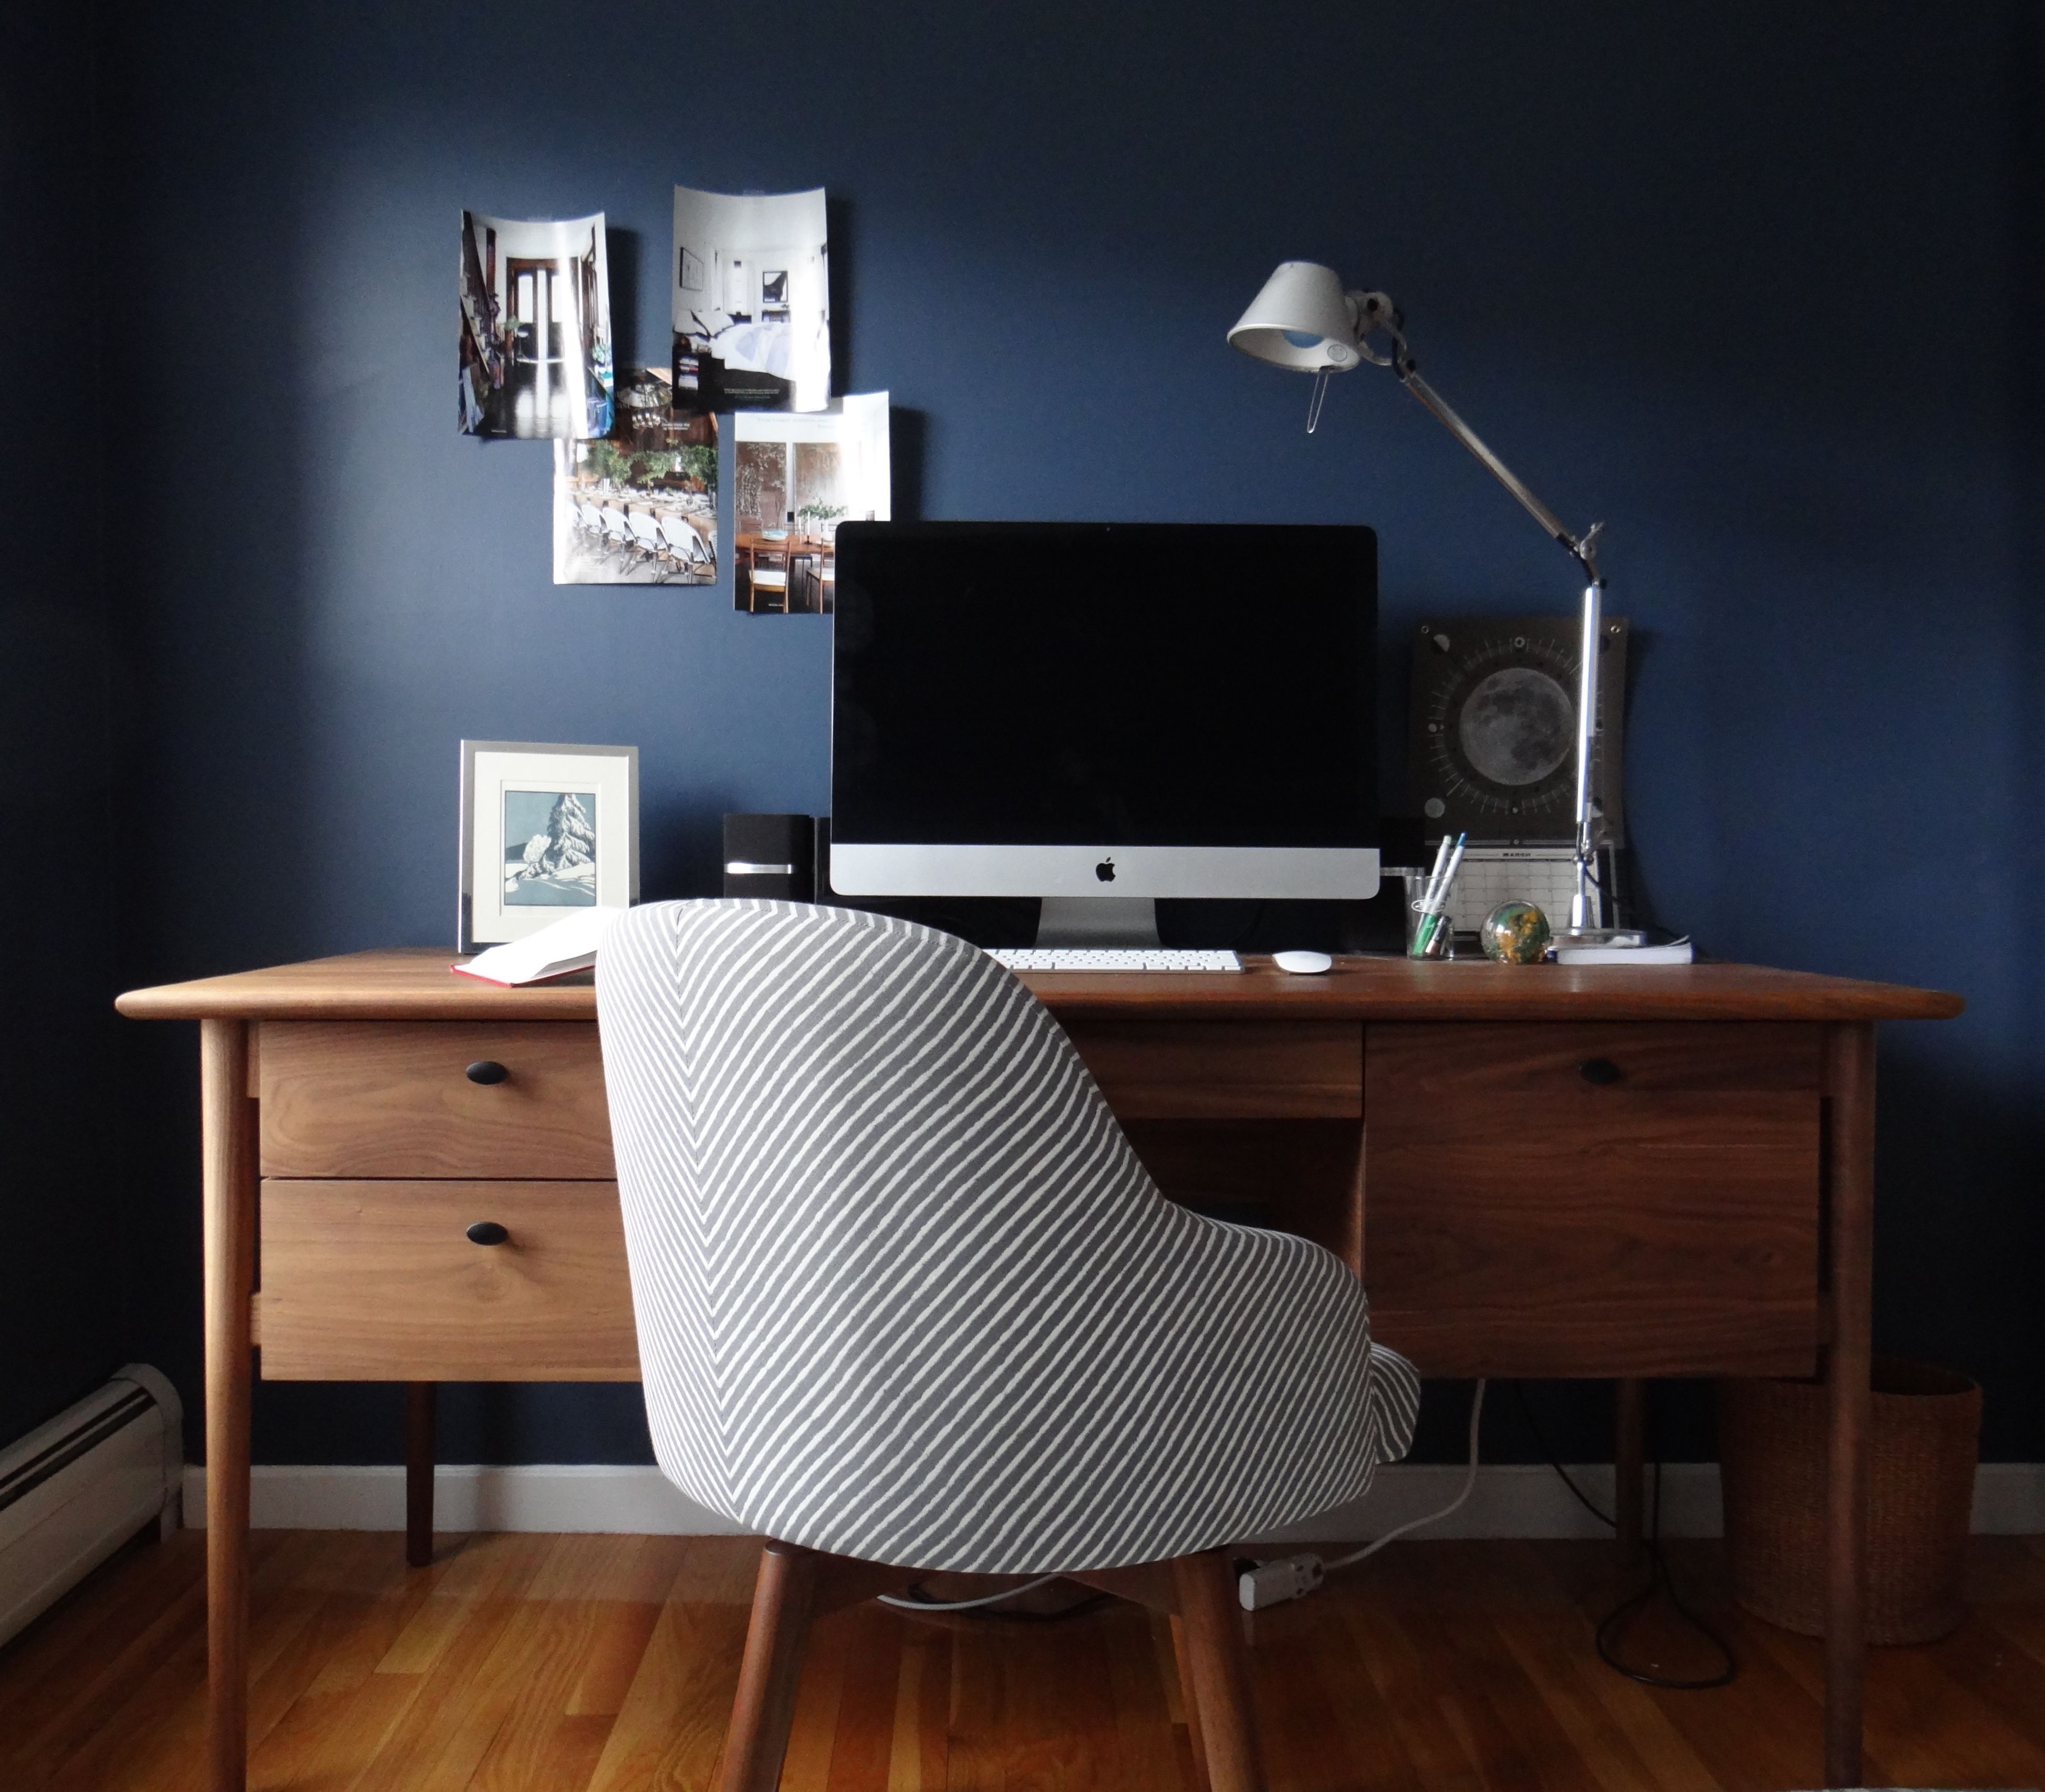 Crate and Barrel Kendall Desk West Elm Saddle Chair